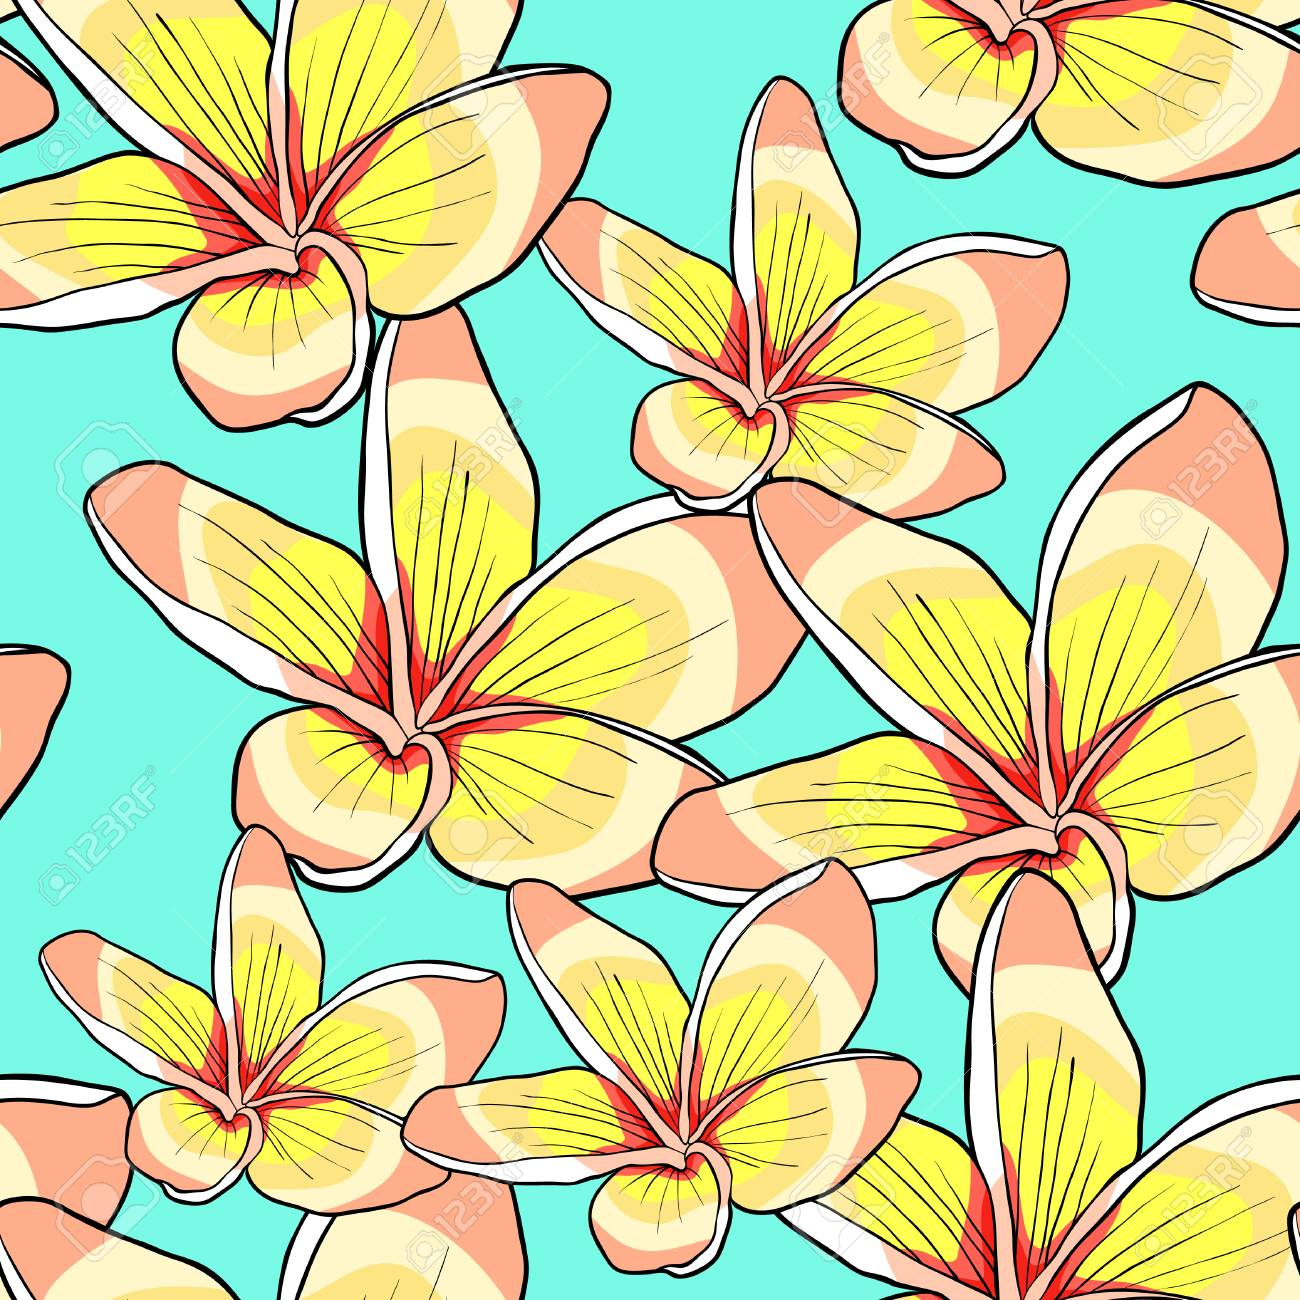 Seamless pattern of hawaiian plumeria flower vector illustration seamless pattern of hawaiian plumeria flower vector illustration stock vector 91032870 izmirmasajfo